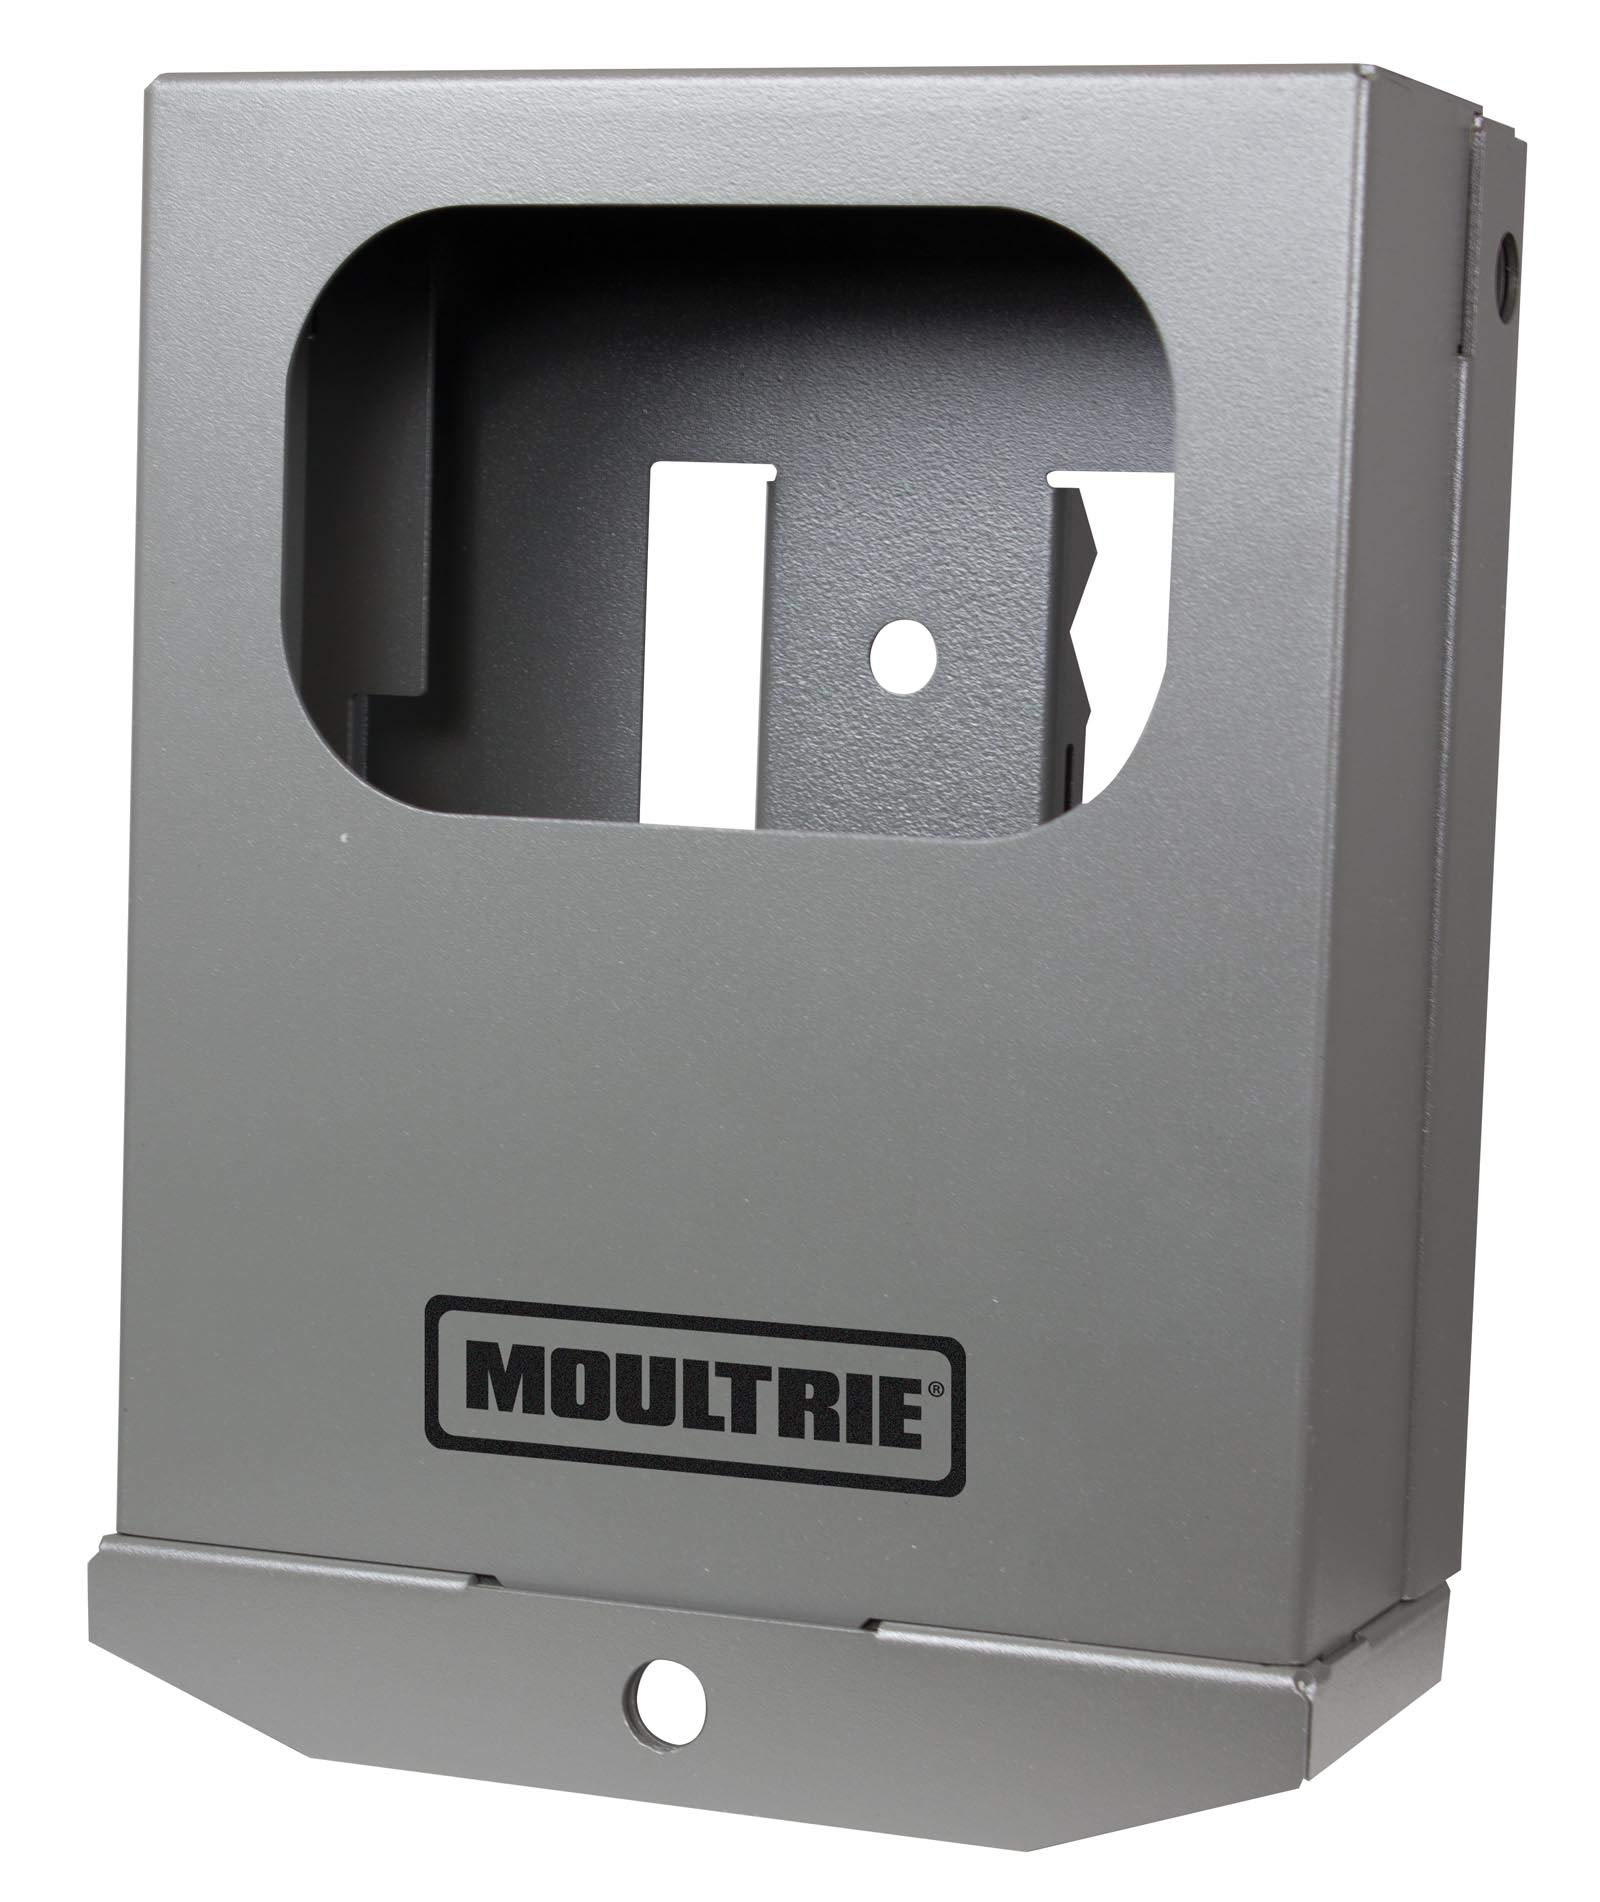 Moultrie Security Box Gen2 A Series Camera, Green